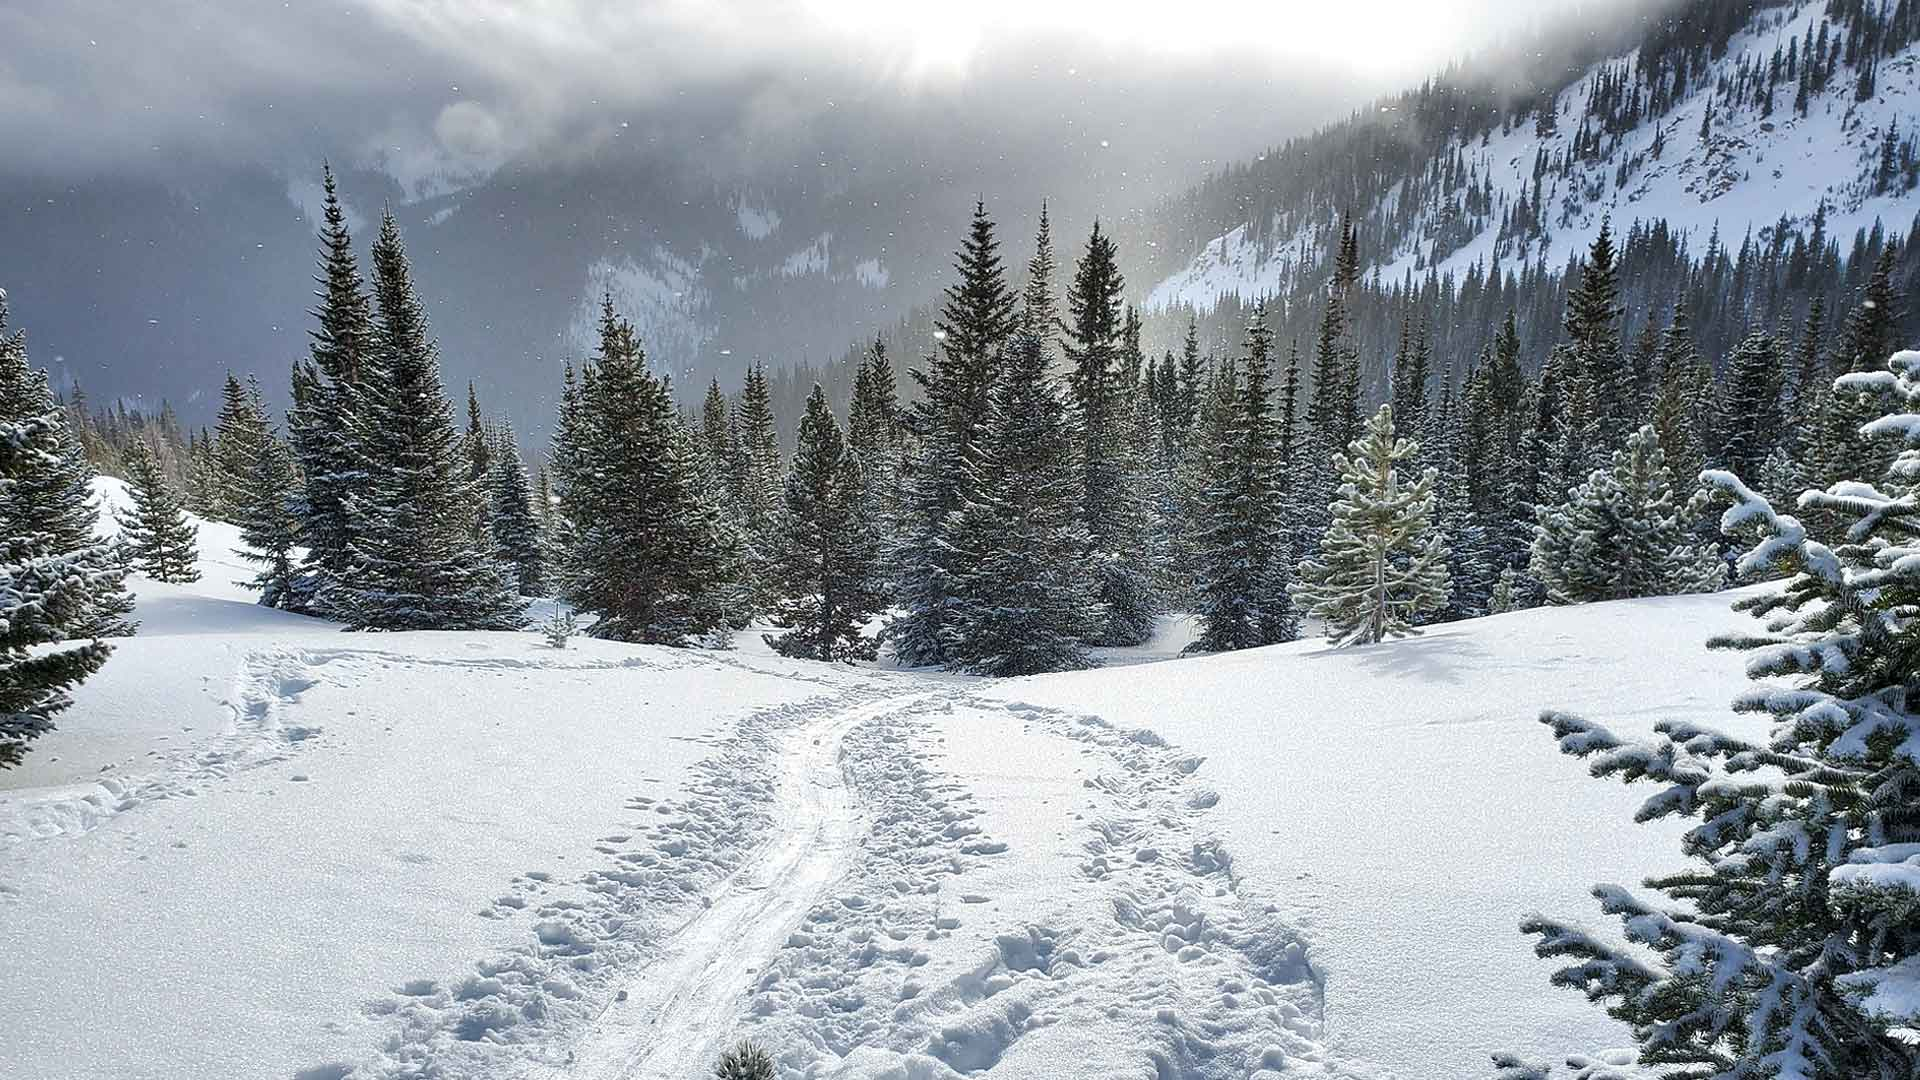 Winter Park Colorado Zoom Background Virtual Video Meeting Calls Images